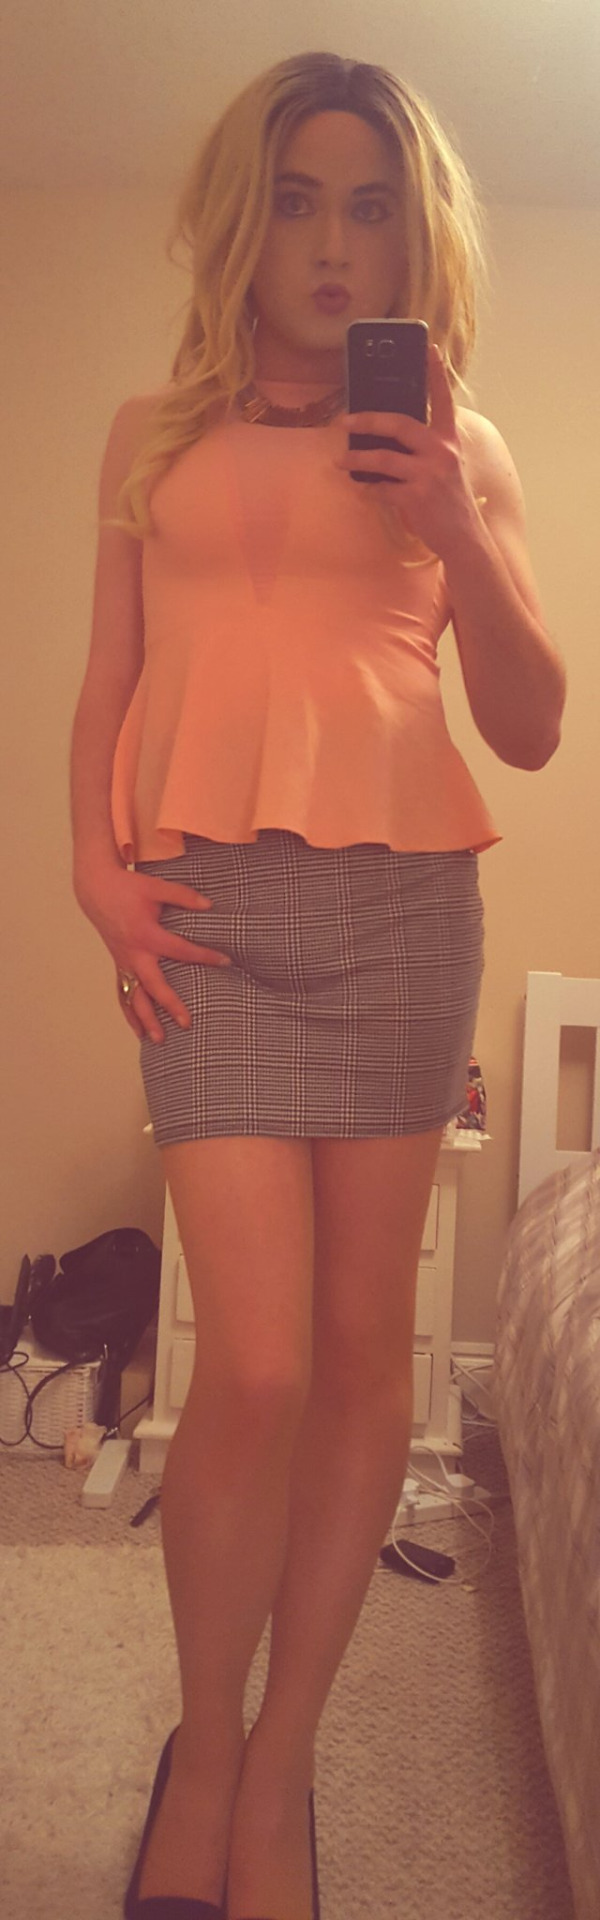 e8c07289c5 Reflection of me What to say I am a sissy that lives secretly his ...